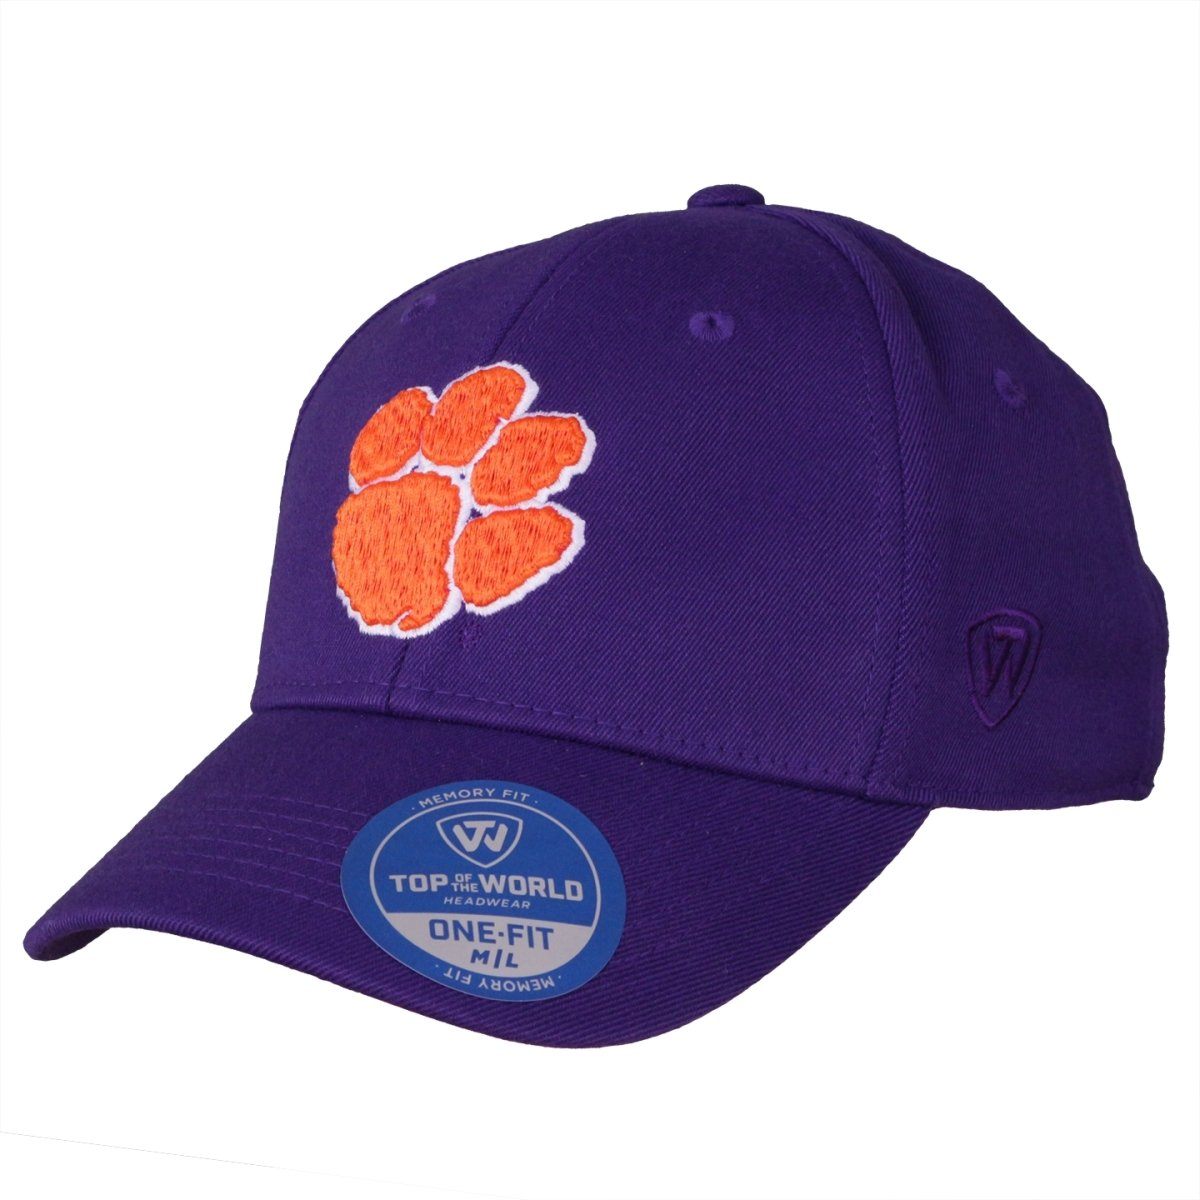 Top of the World Clemson Classic Purple Flex Fit Hat - Mr. Knickerbocker